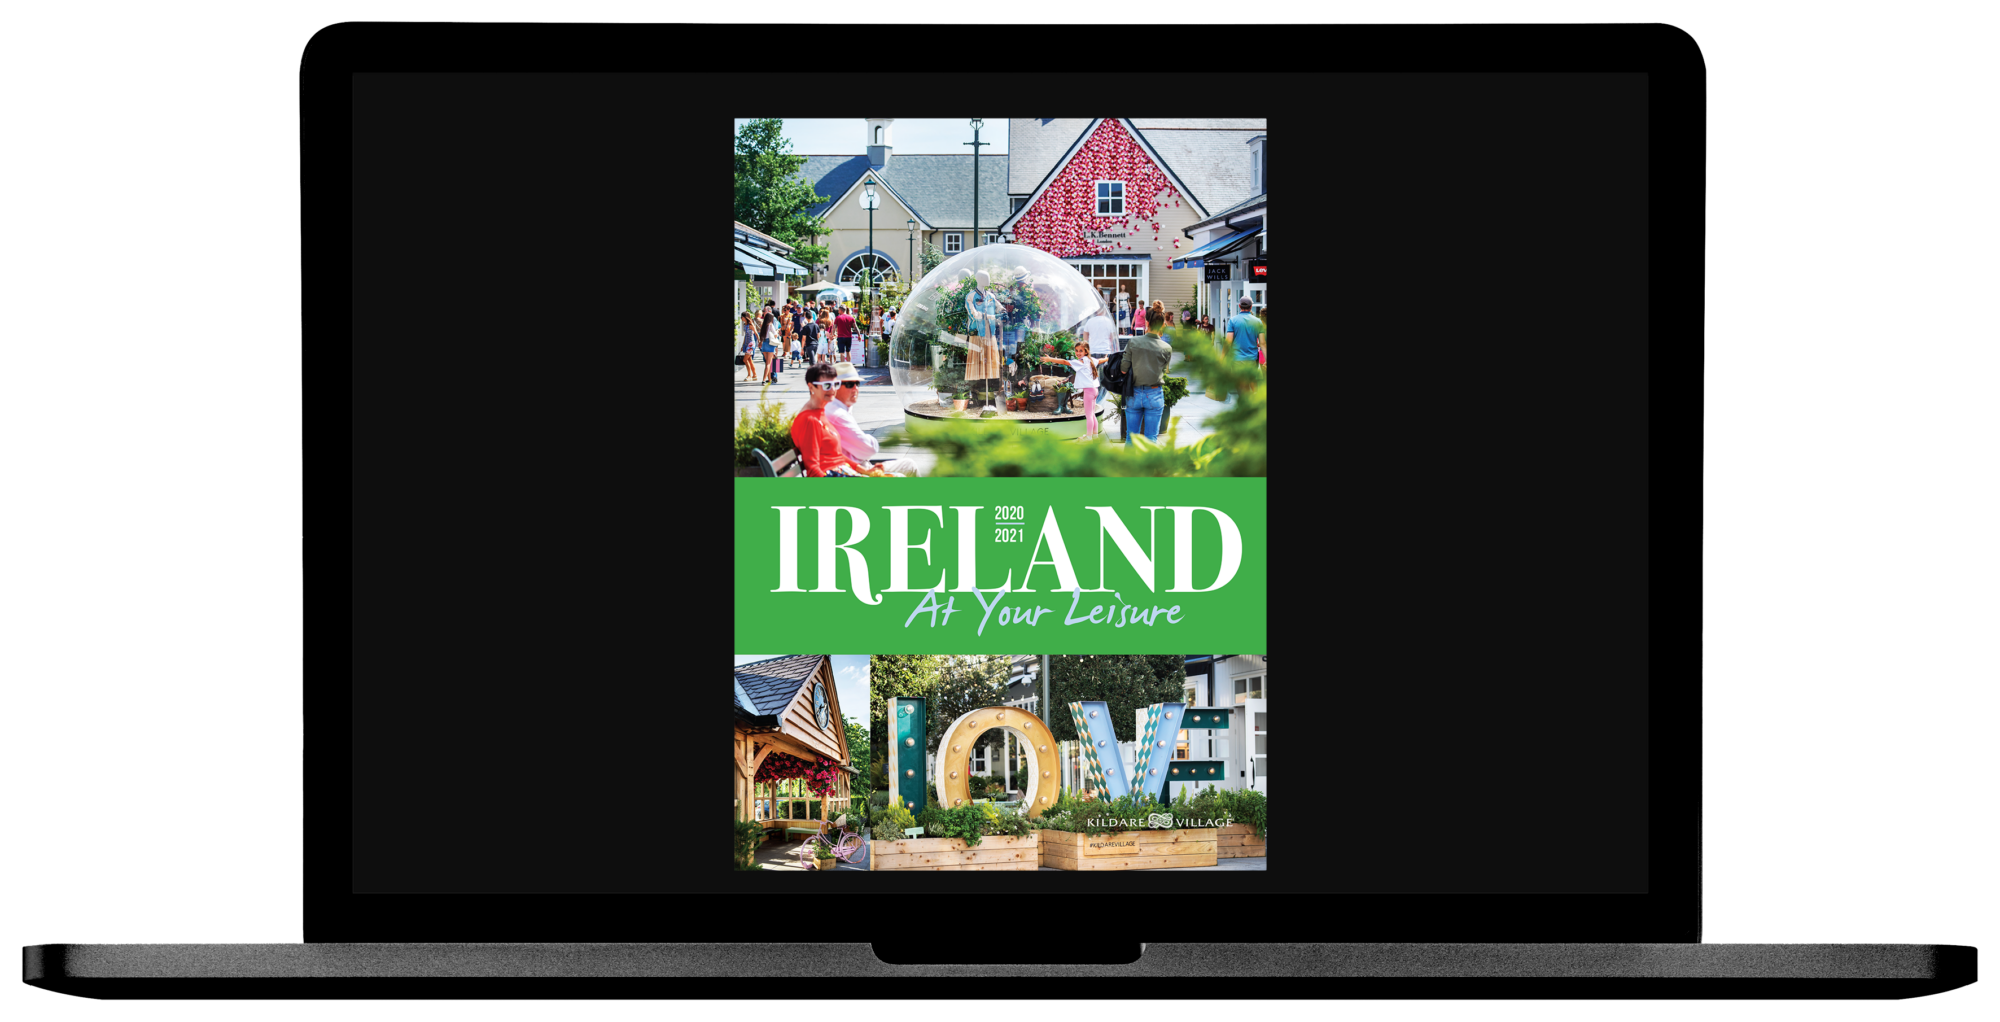 Ireland at your Leisure 2020/2021 - Laptop Spread A